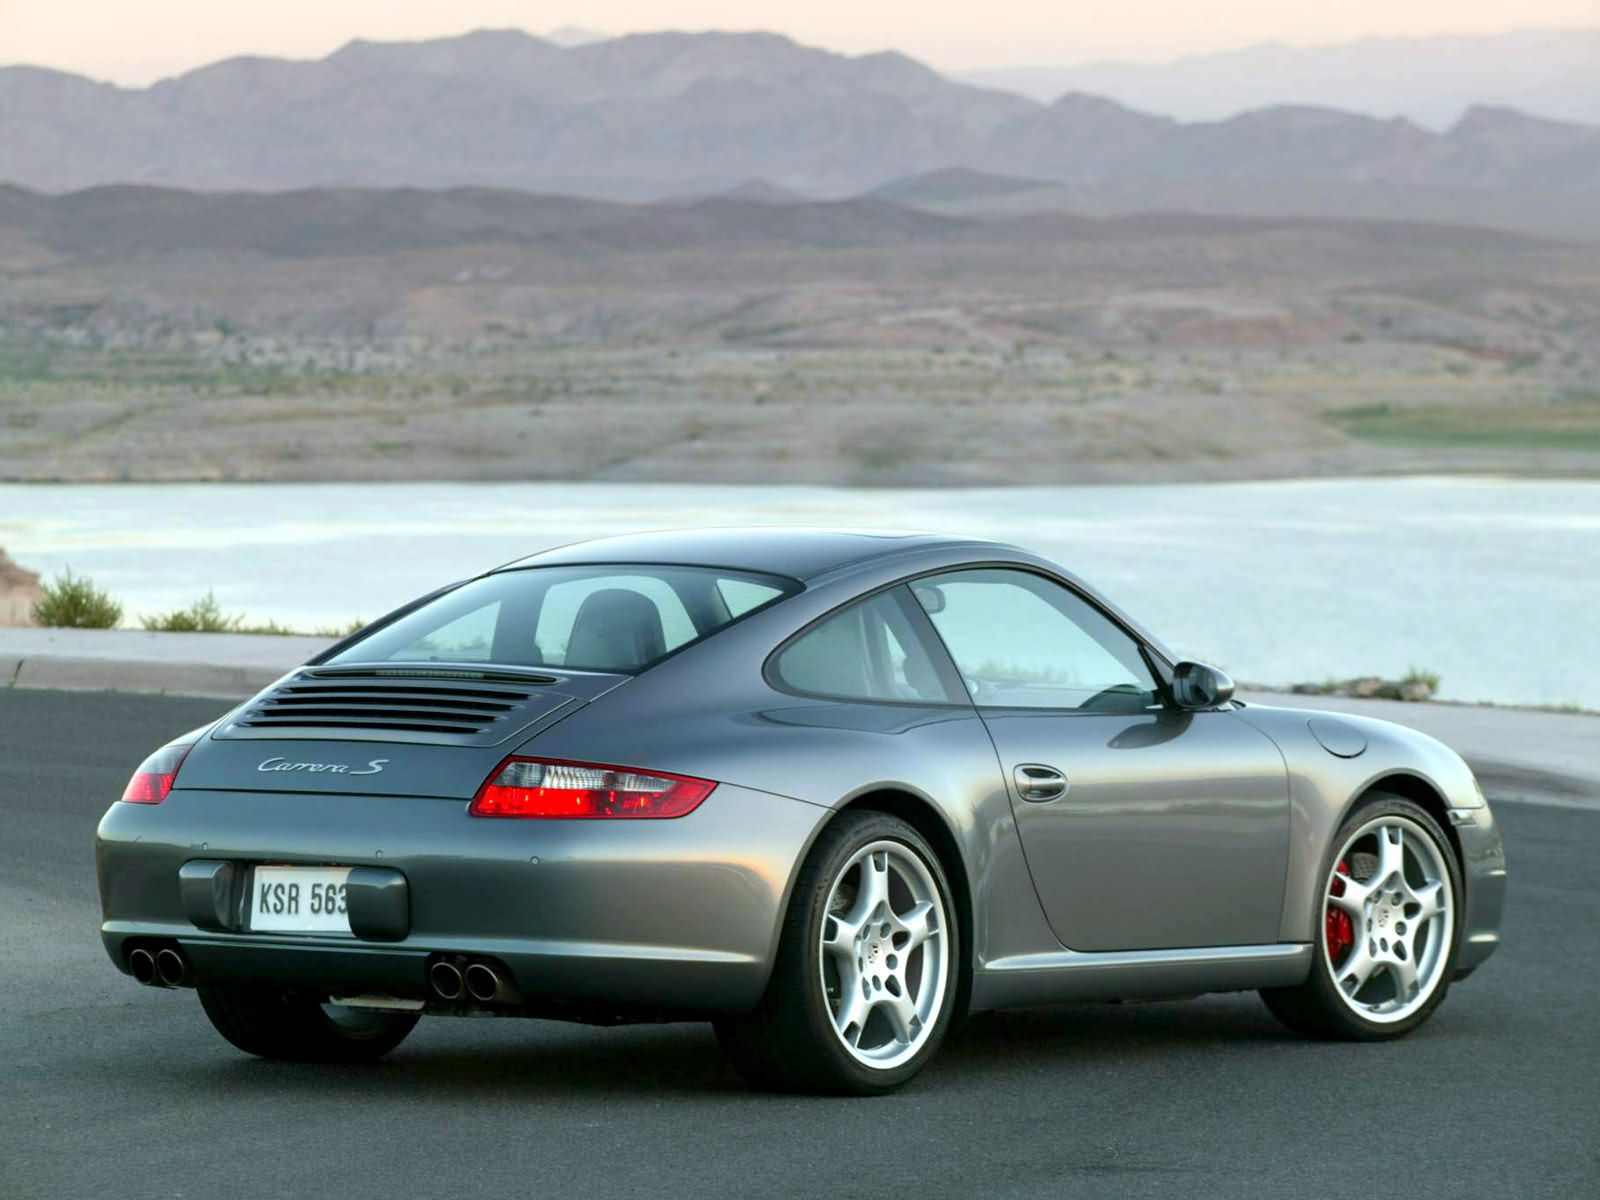 porsche 997 911 carrera s photos photogallery with 52 pics. Black Bedroom Furniture Sets. Home Design Ideas